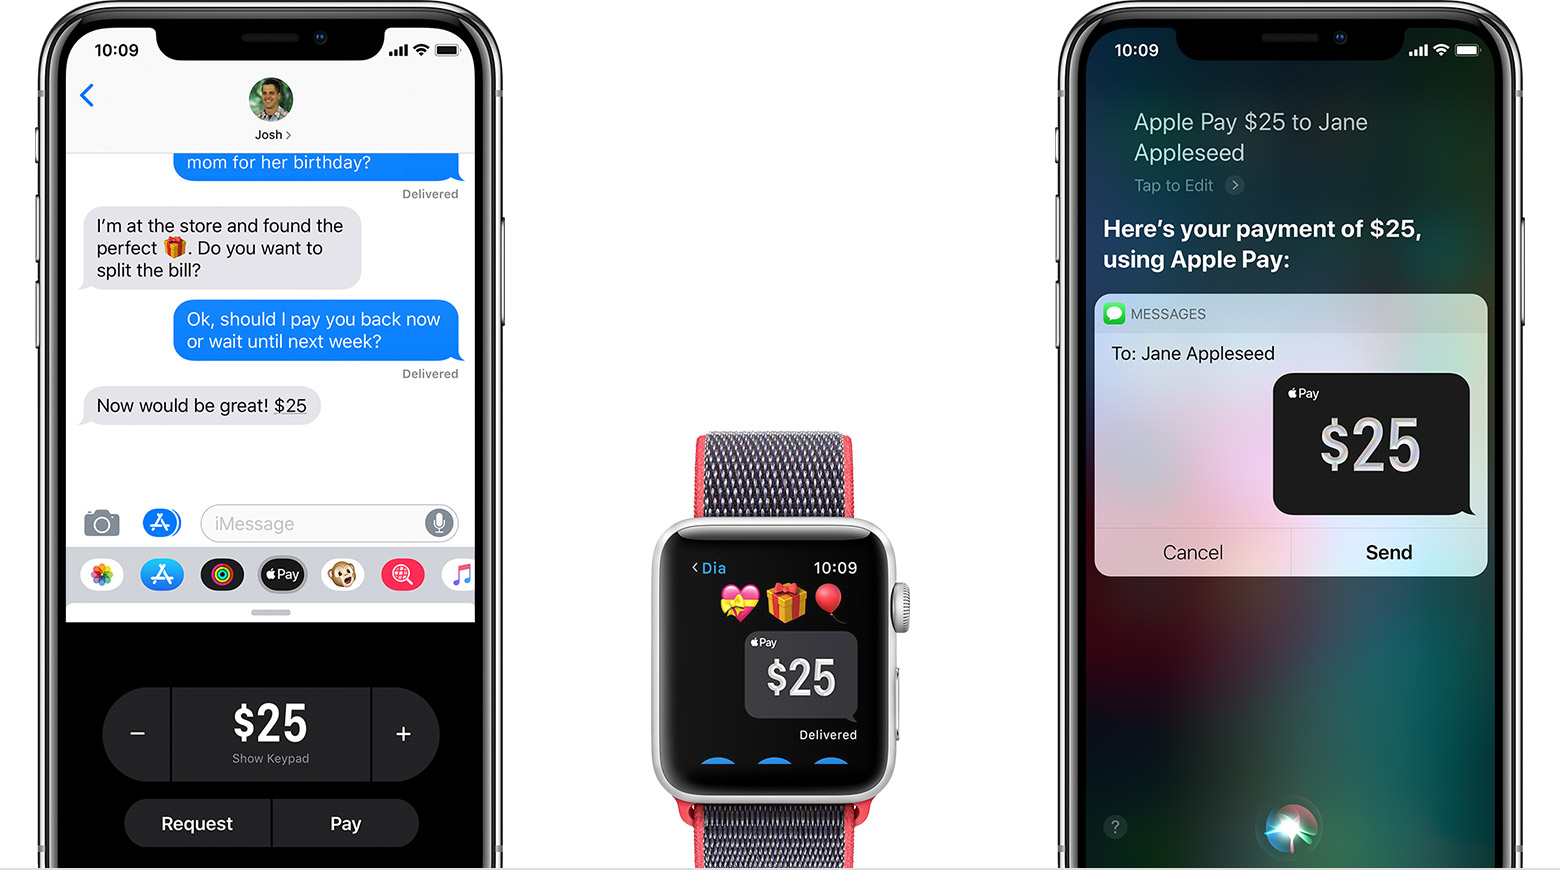 Send, receive, and request money with Apple Pay - Apple Support